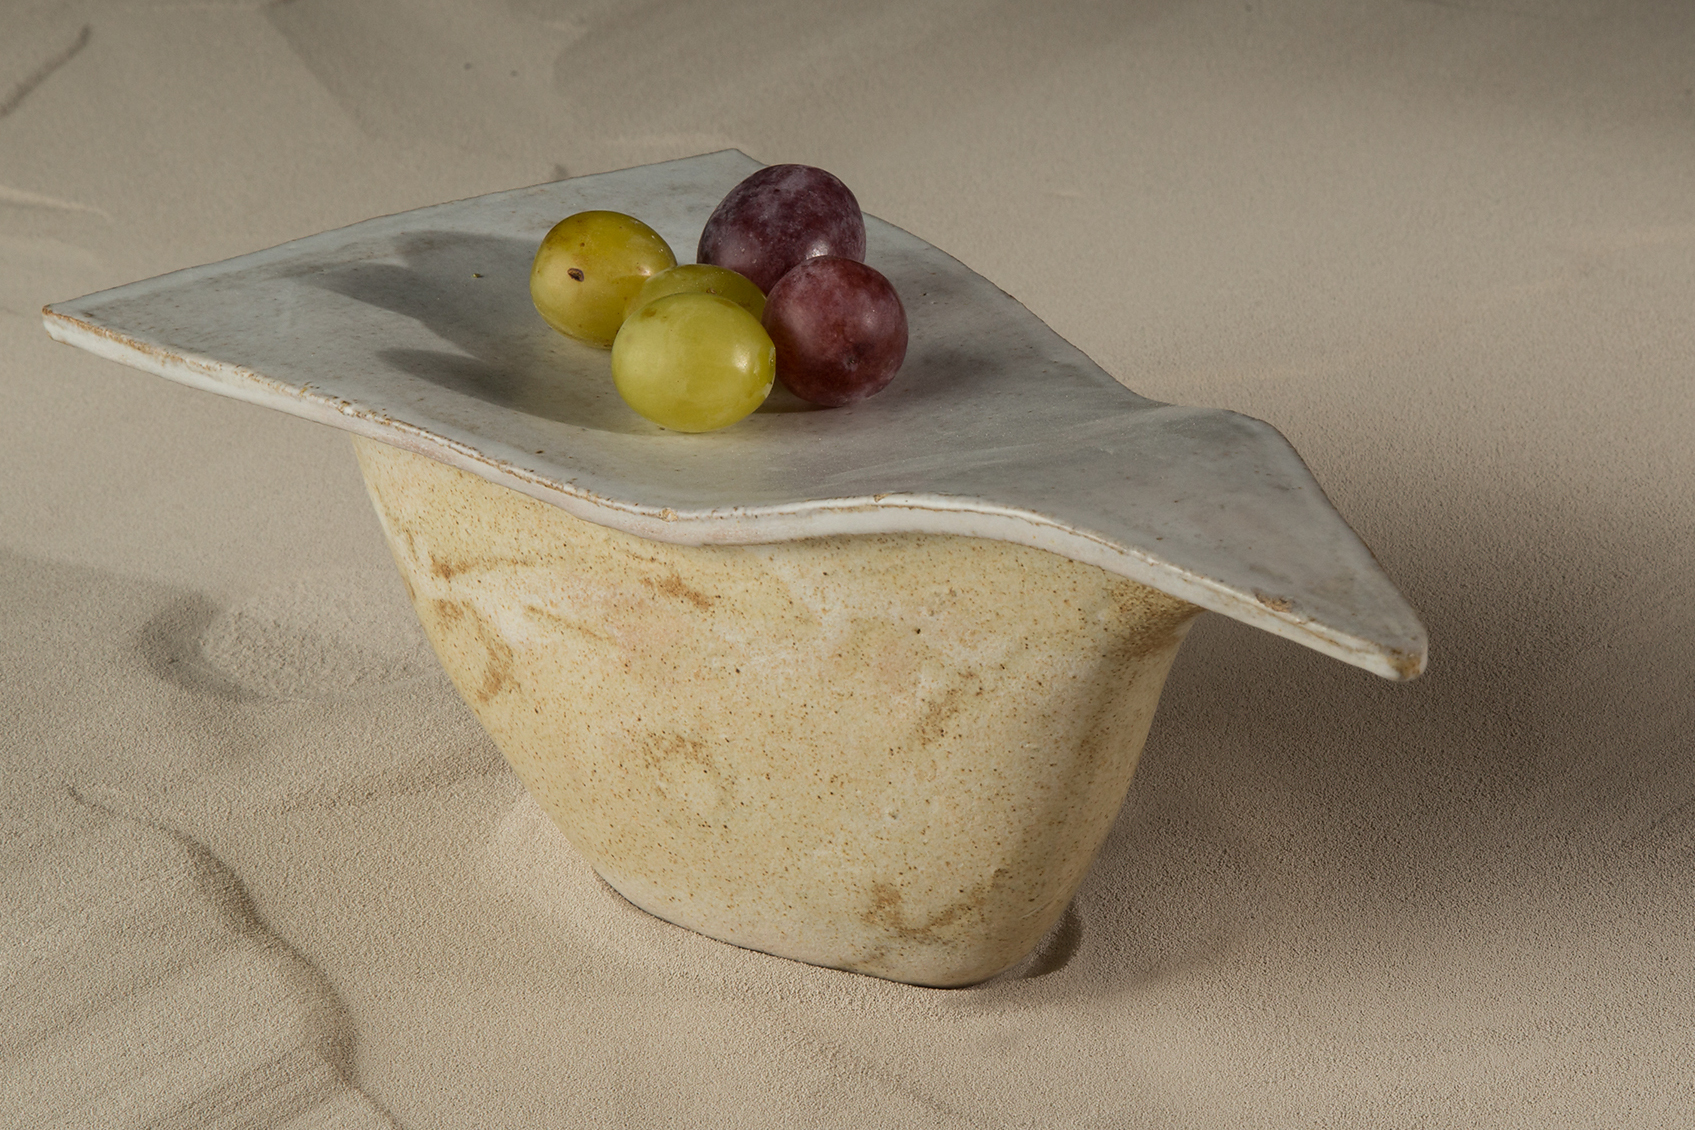 Tableware by Isabel Companys (Gastroceramic). Photo by Gastroceramic.